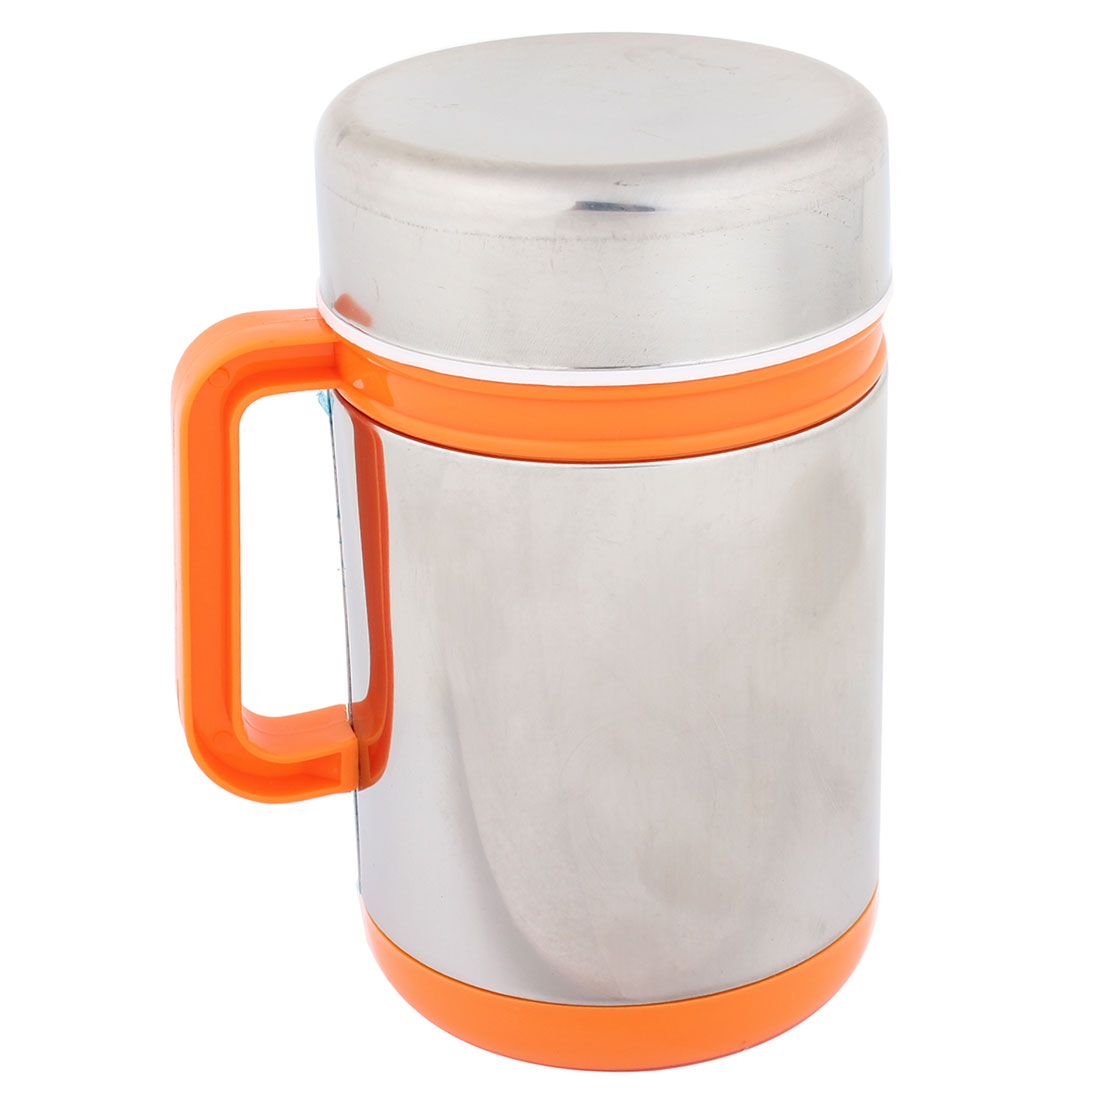 Nonslip Handle Stainless Steel Shell 300ml 10 OZ Water Tea Cup Mug Orange